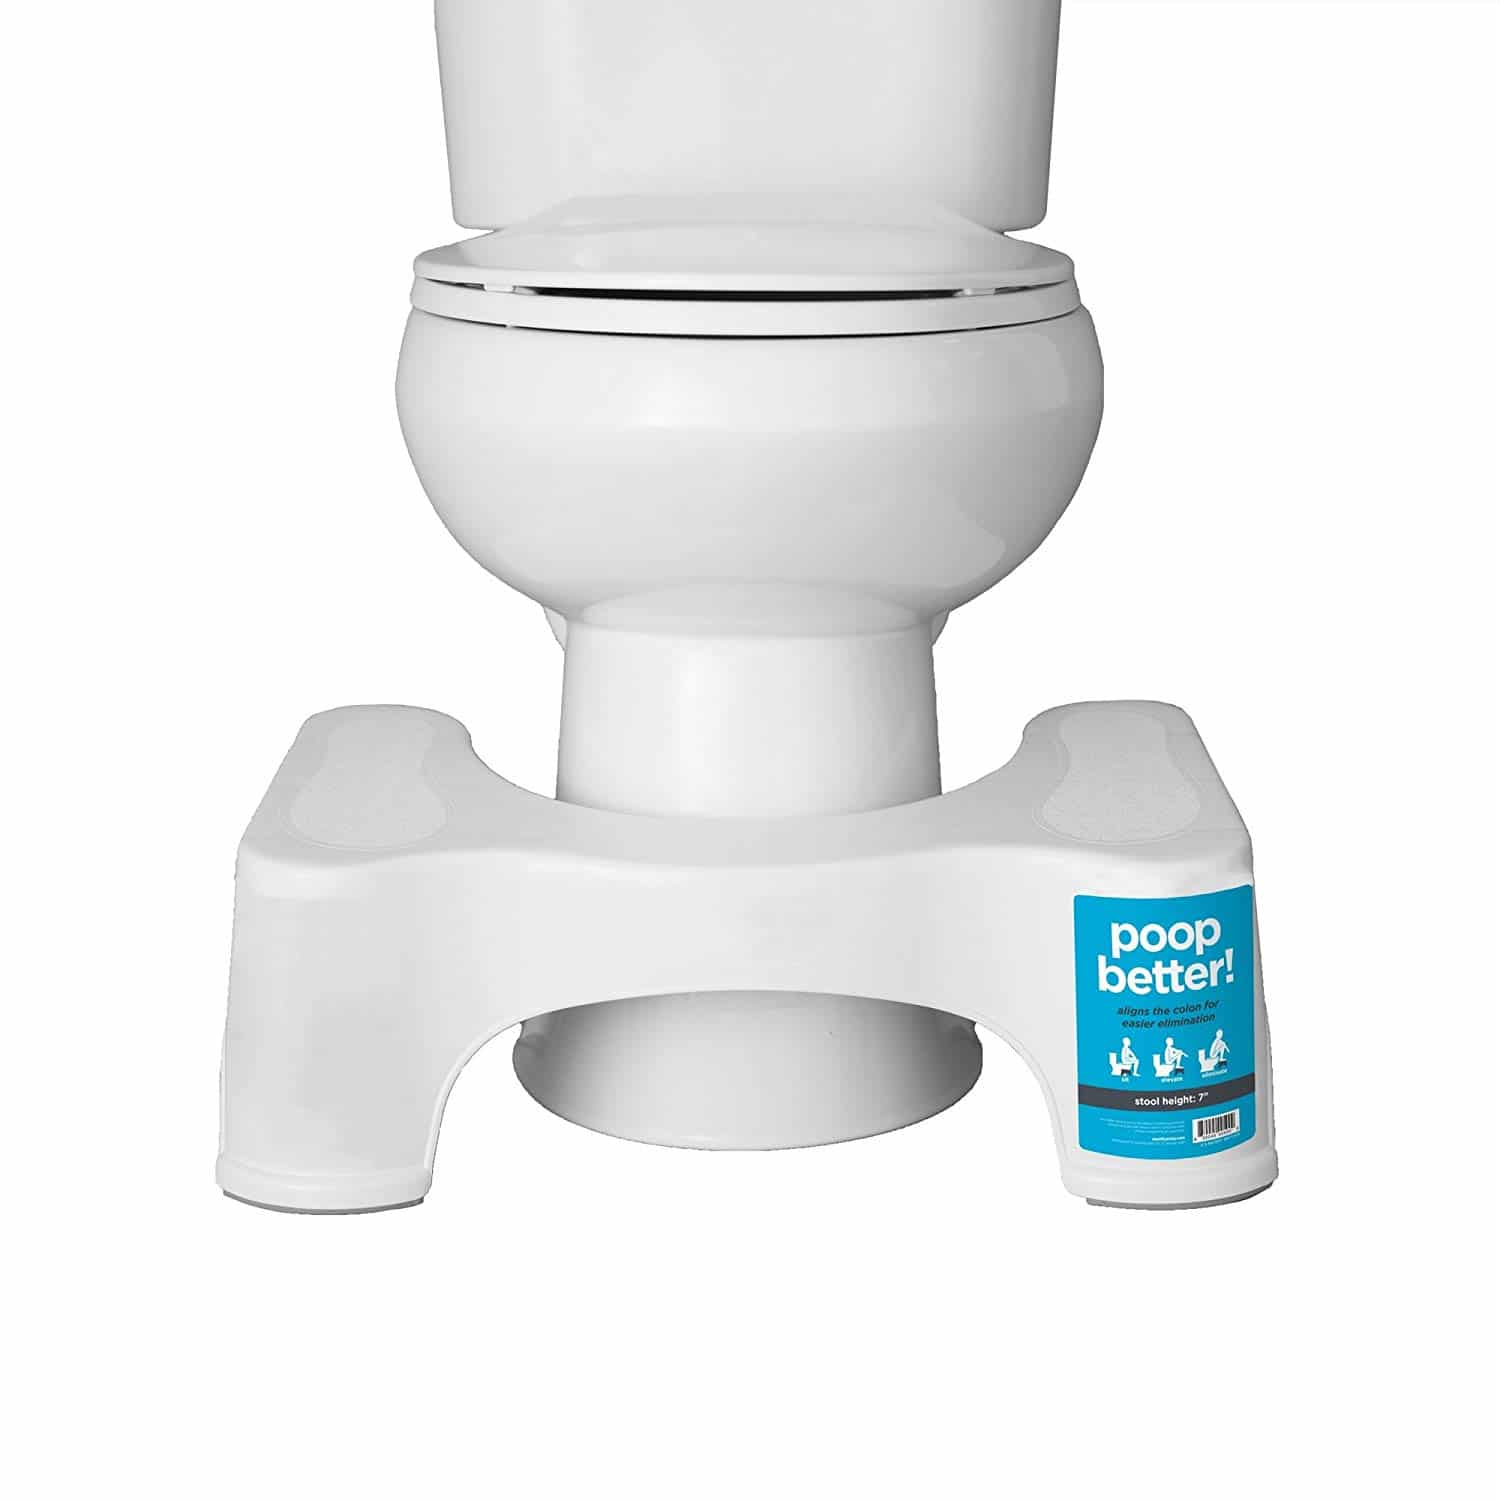 gag-gifts-for-men-potty